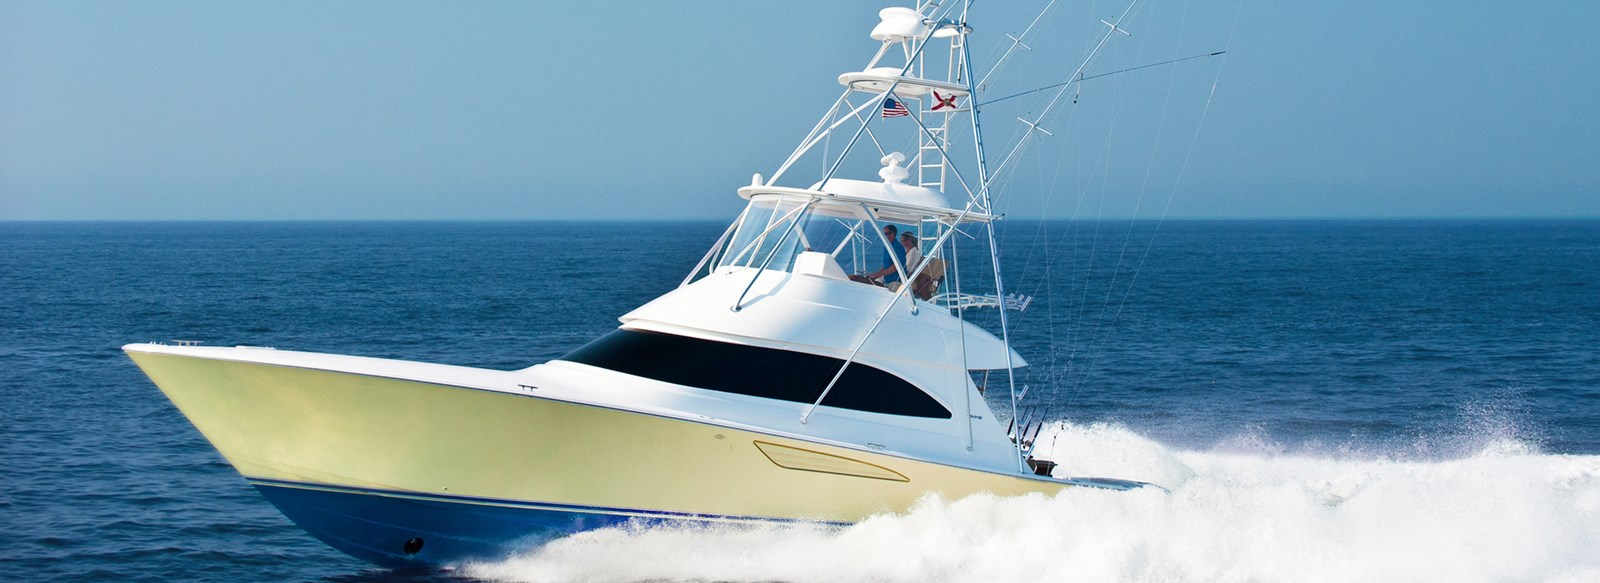 New Viking 52 Convertible Yachts For Sale